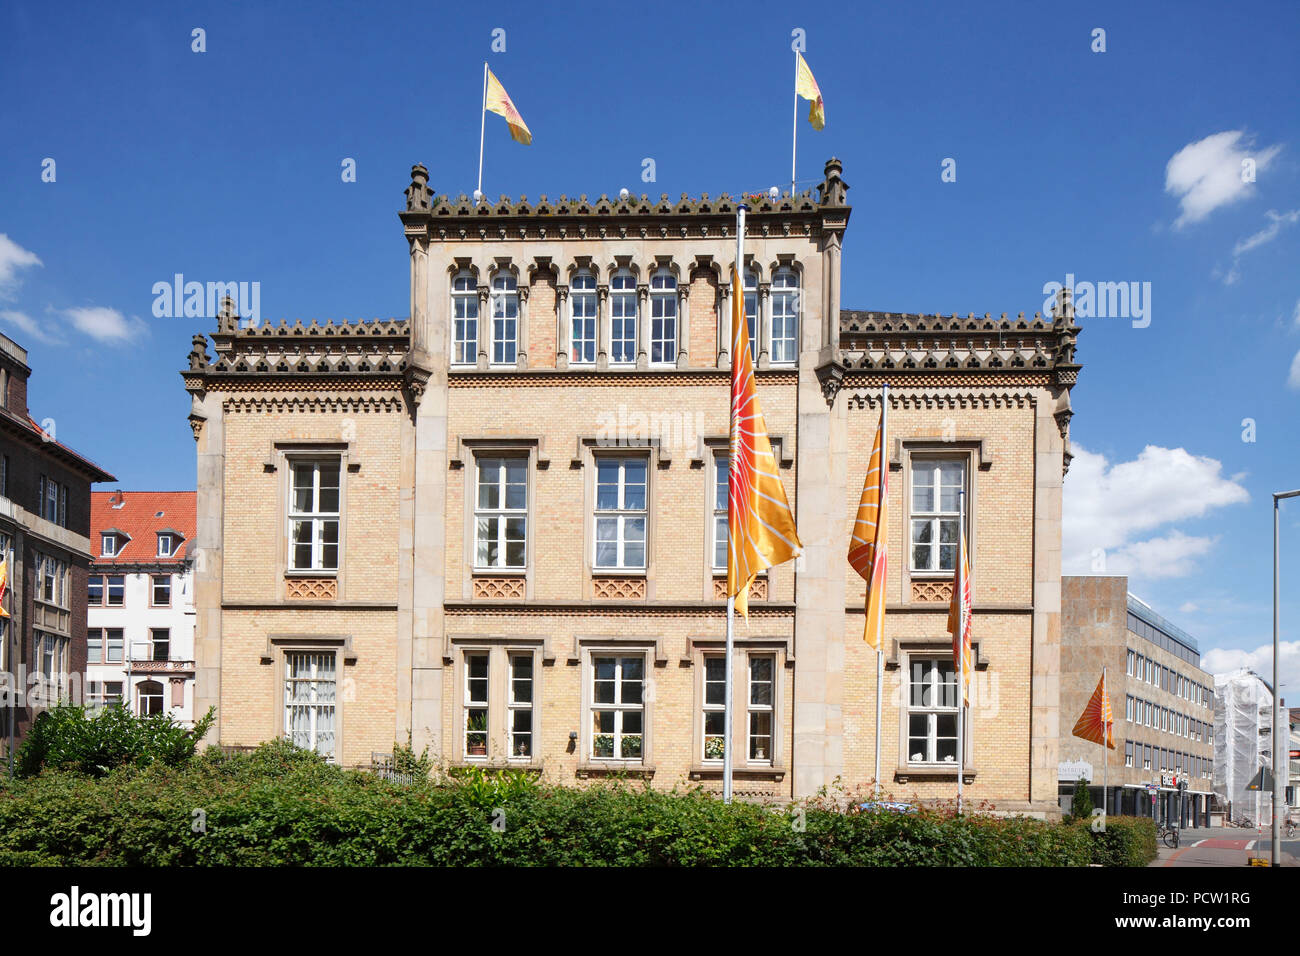 The Palais Grote, also: Grote-Palais, former aristocratic palace, Hannover, Lower Saxony, Germany, Europe - Stock Image